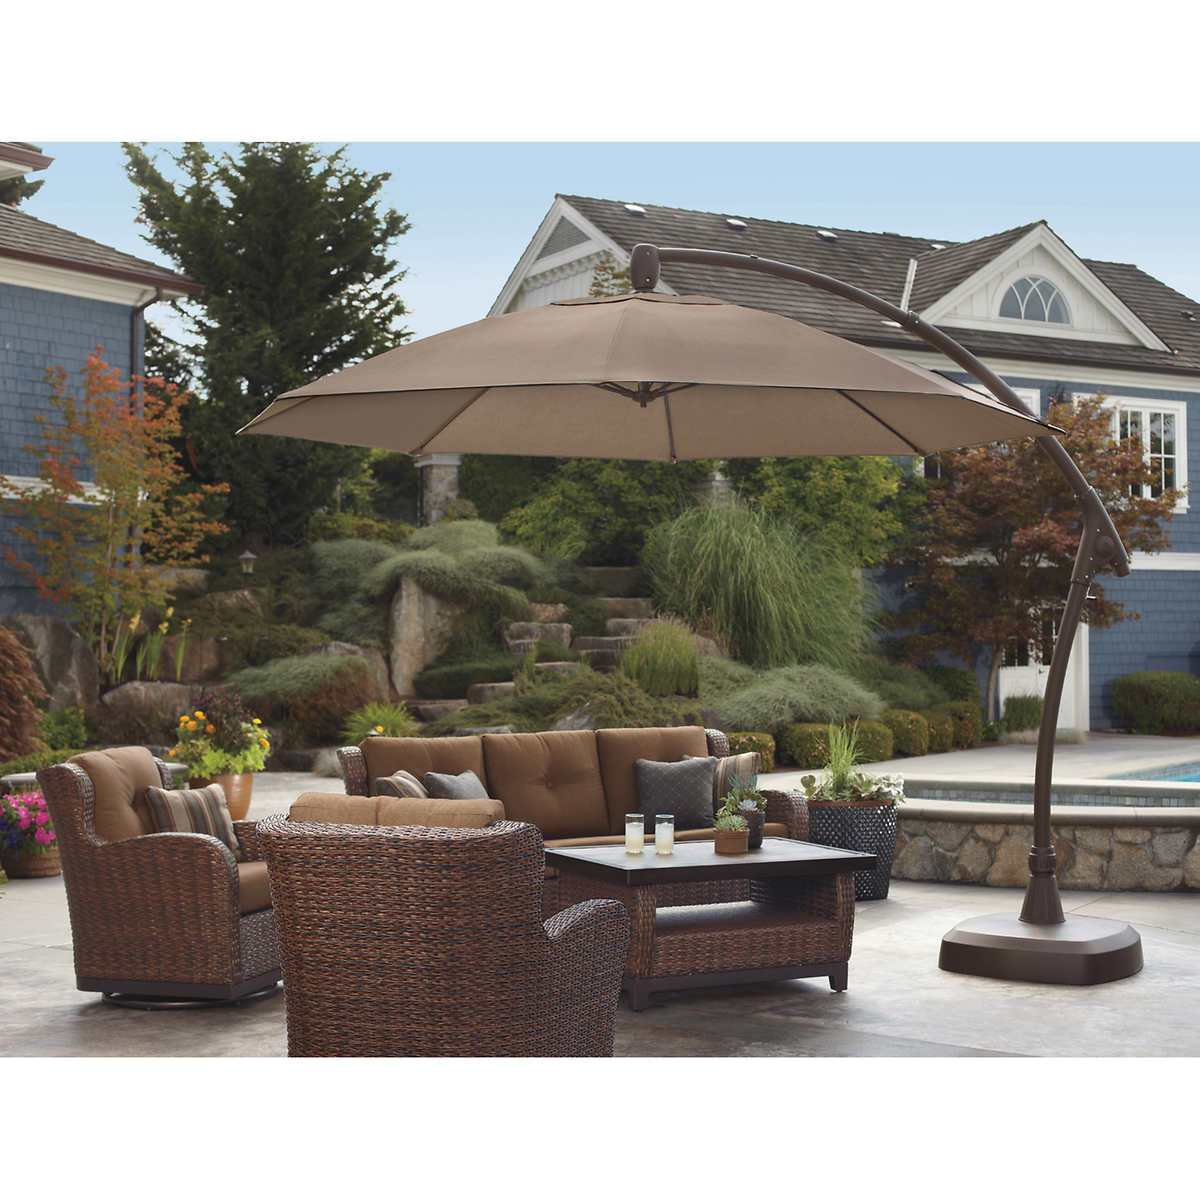 Umbrellas at Lowes | Costco Canopy | Costco Offset Umbrella